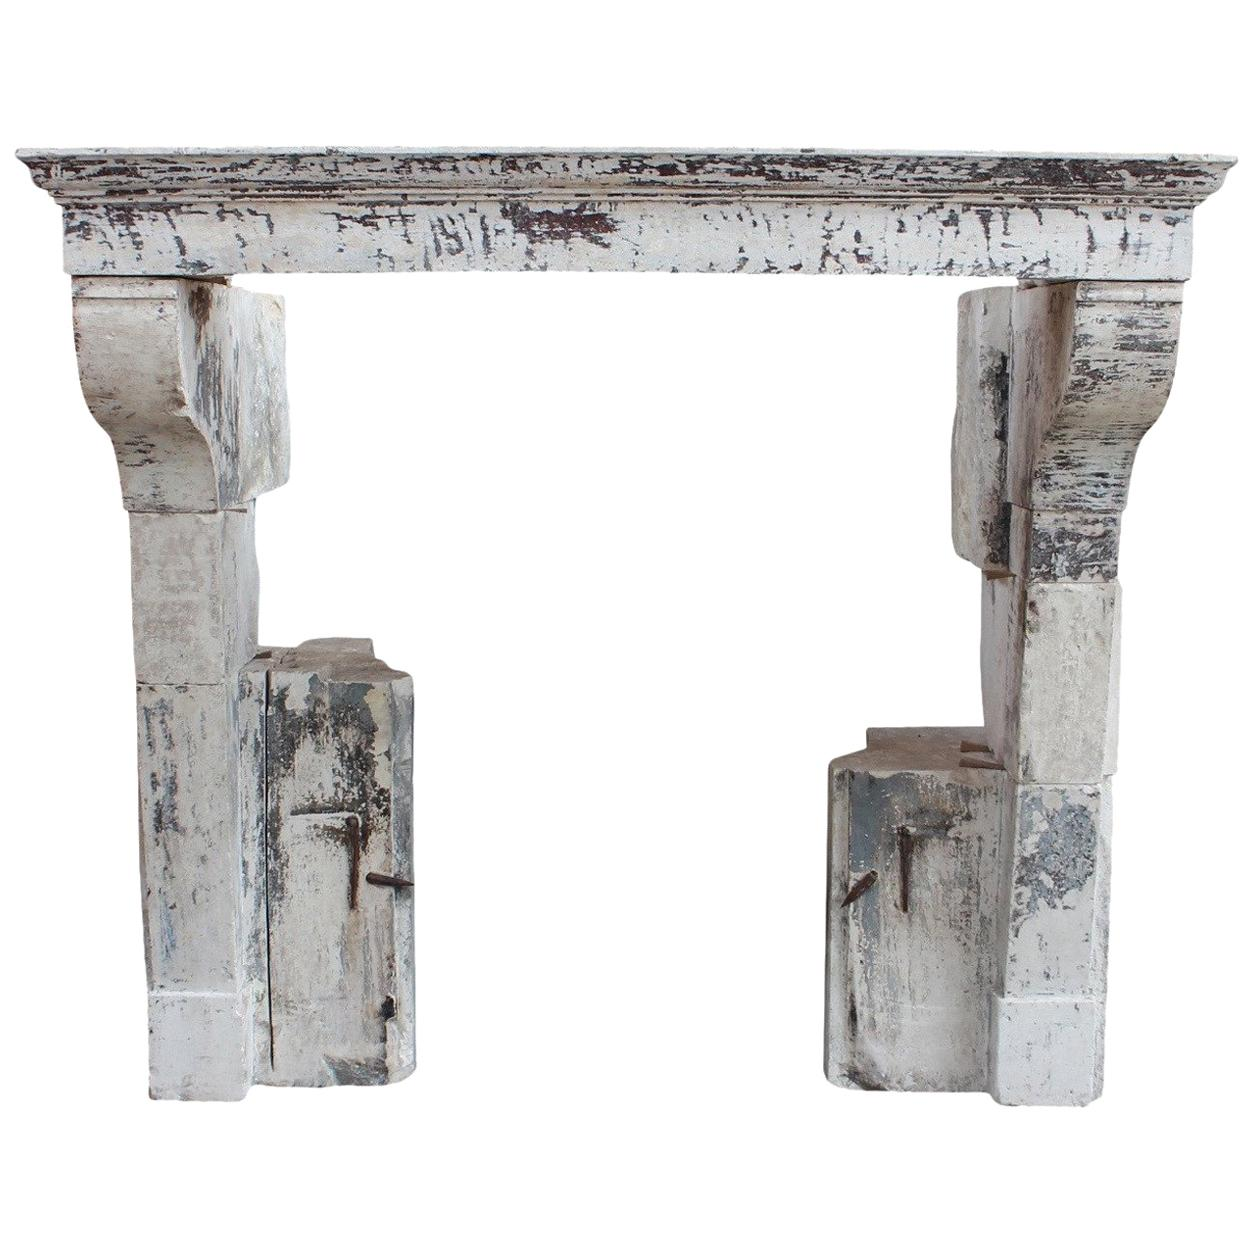 French Country Fireplace French Country Limestone Antique Fireplace Mantle With Original Patina